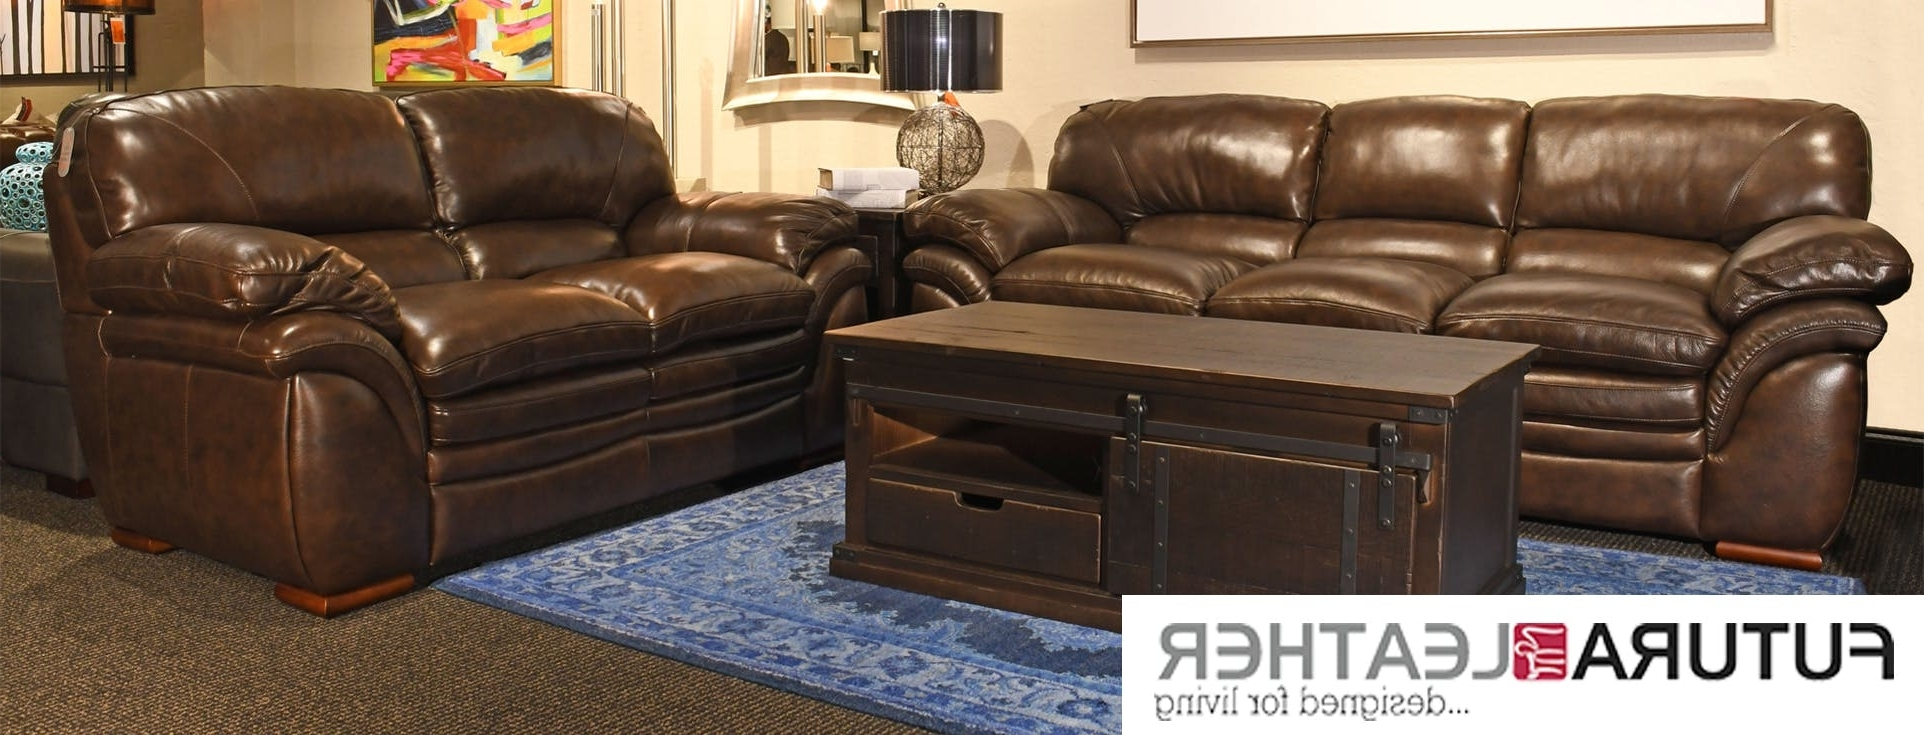 Widely Used Mill Large Leather Coffee Tables Intended For Futura Leather Furniture (View 19 of 20)